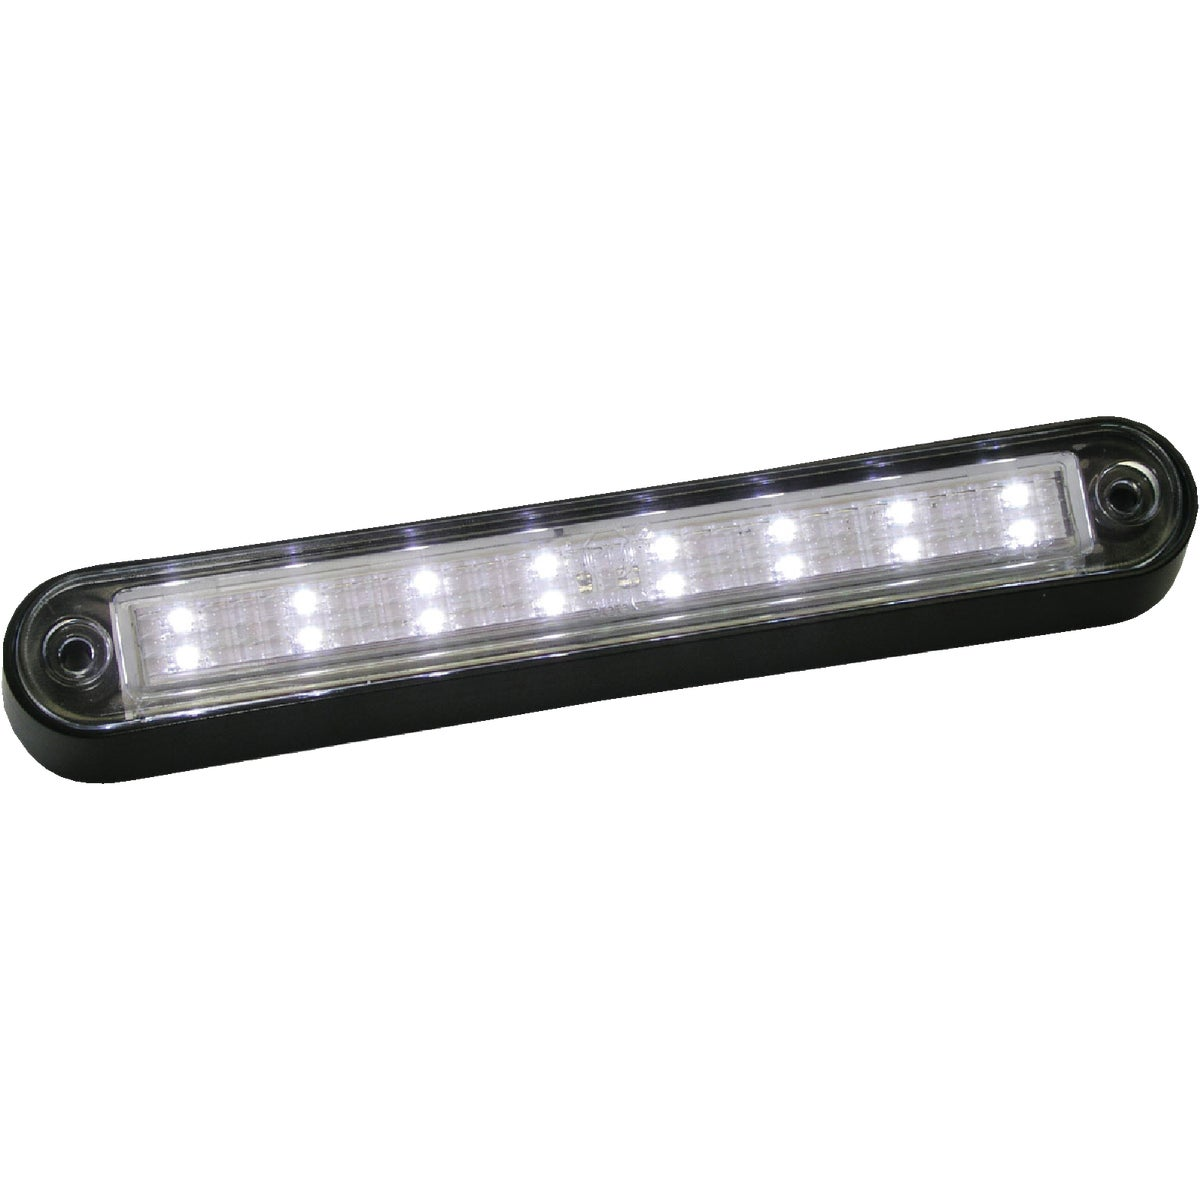 LED INT/EXT AISLE LIGHT